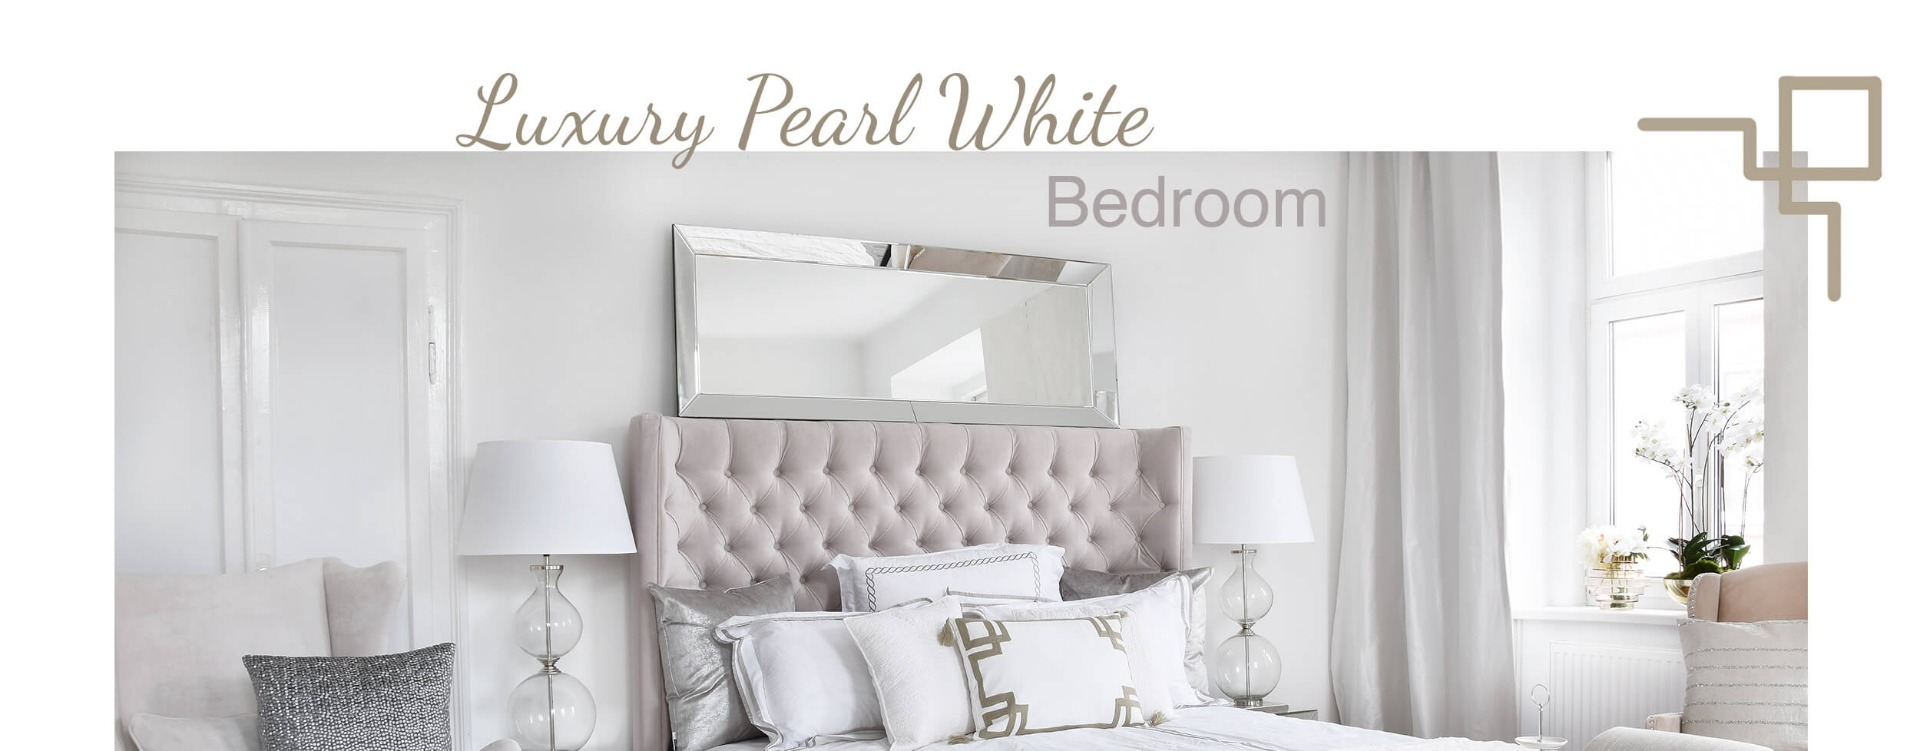 Bettbank Leder Luxury Pearl White Bedroom Looks